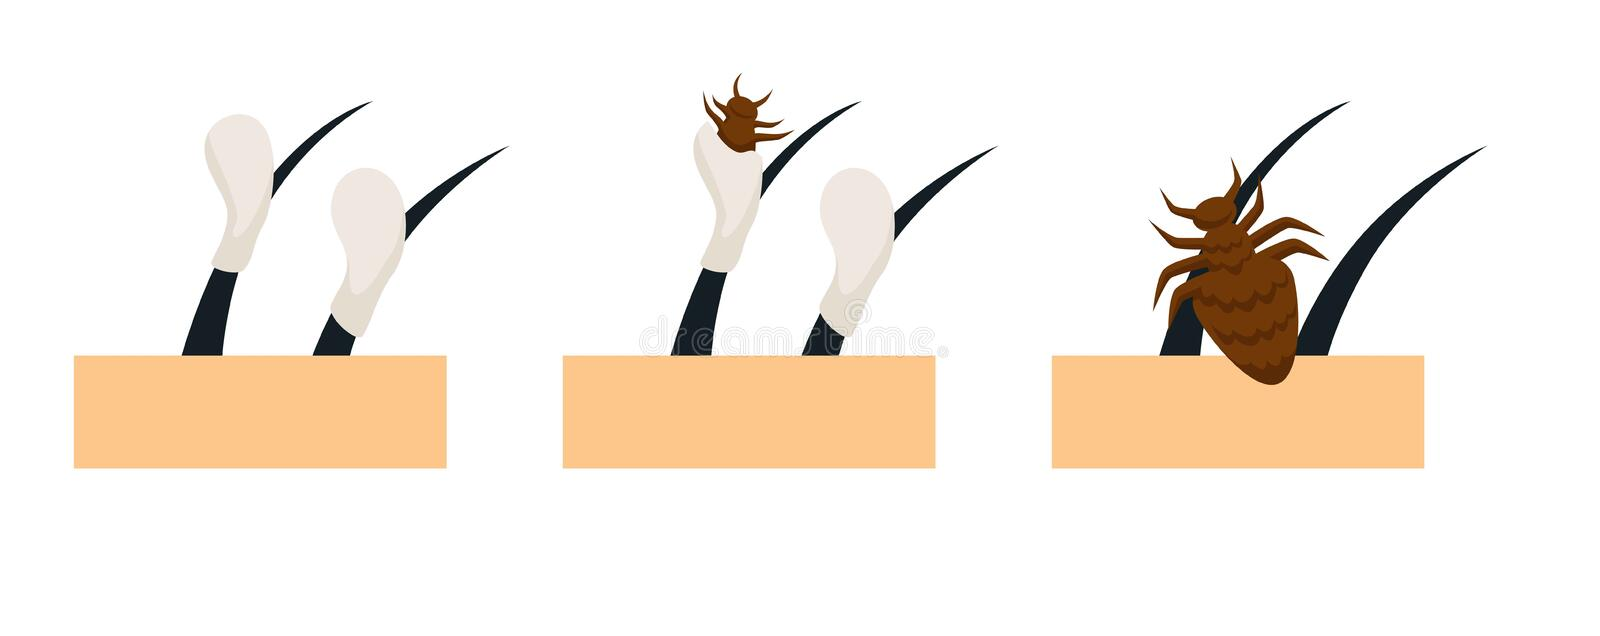 Head lice lifecycle on hair and scalp stock illustration